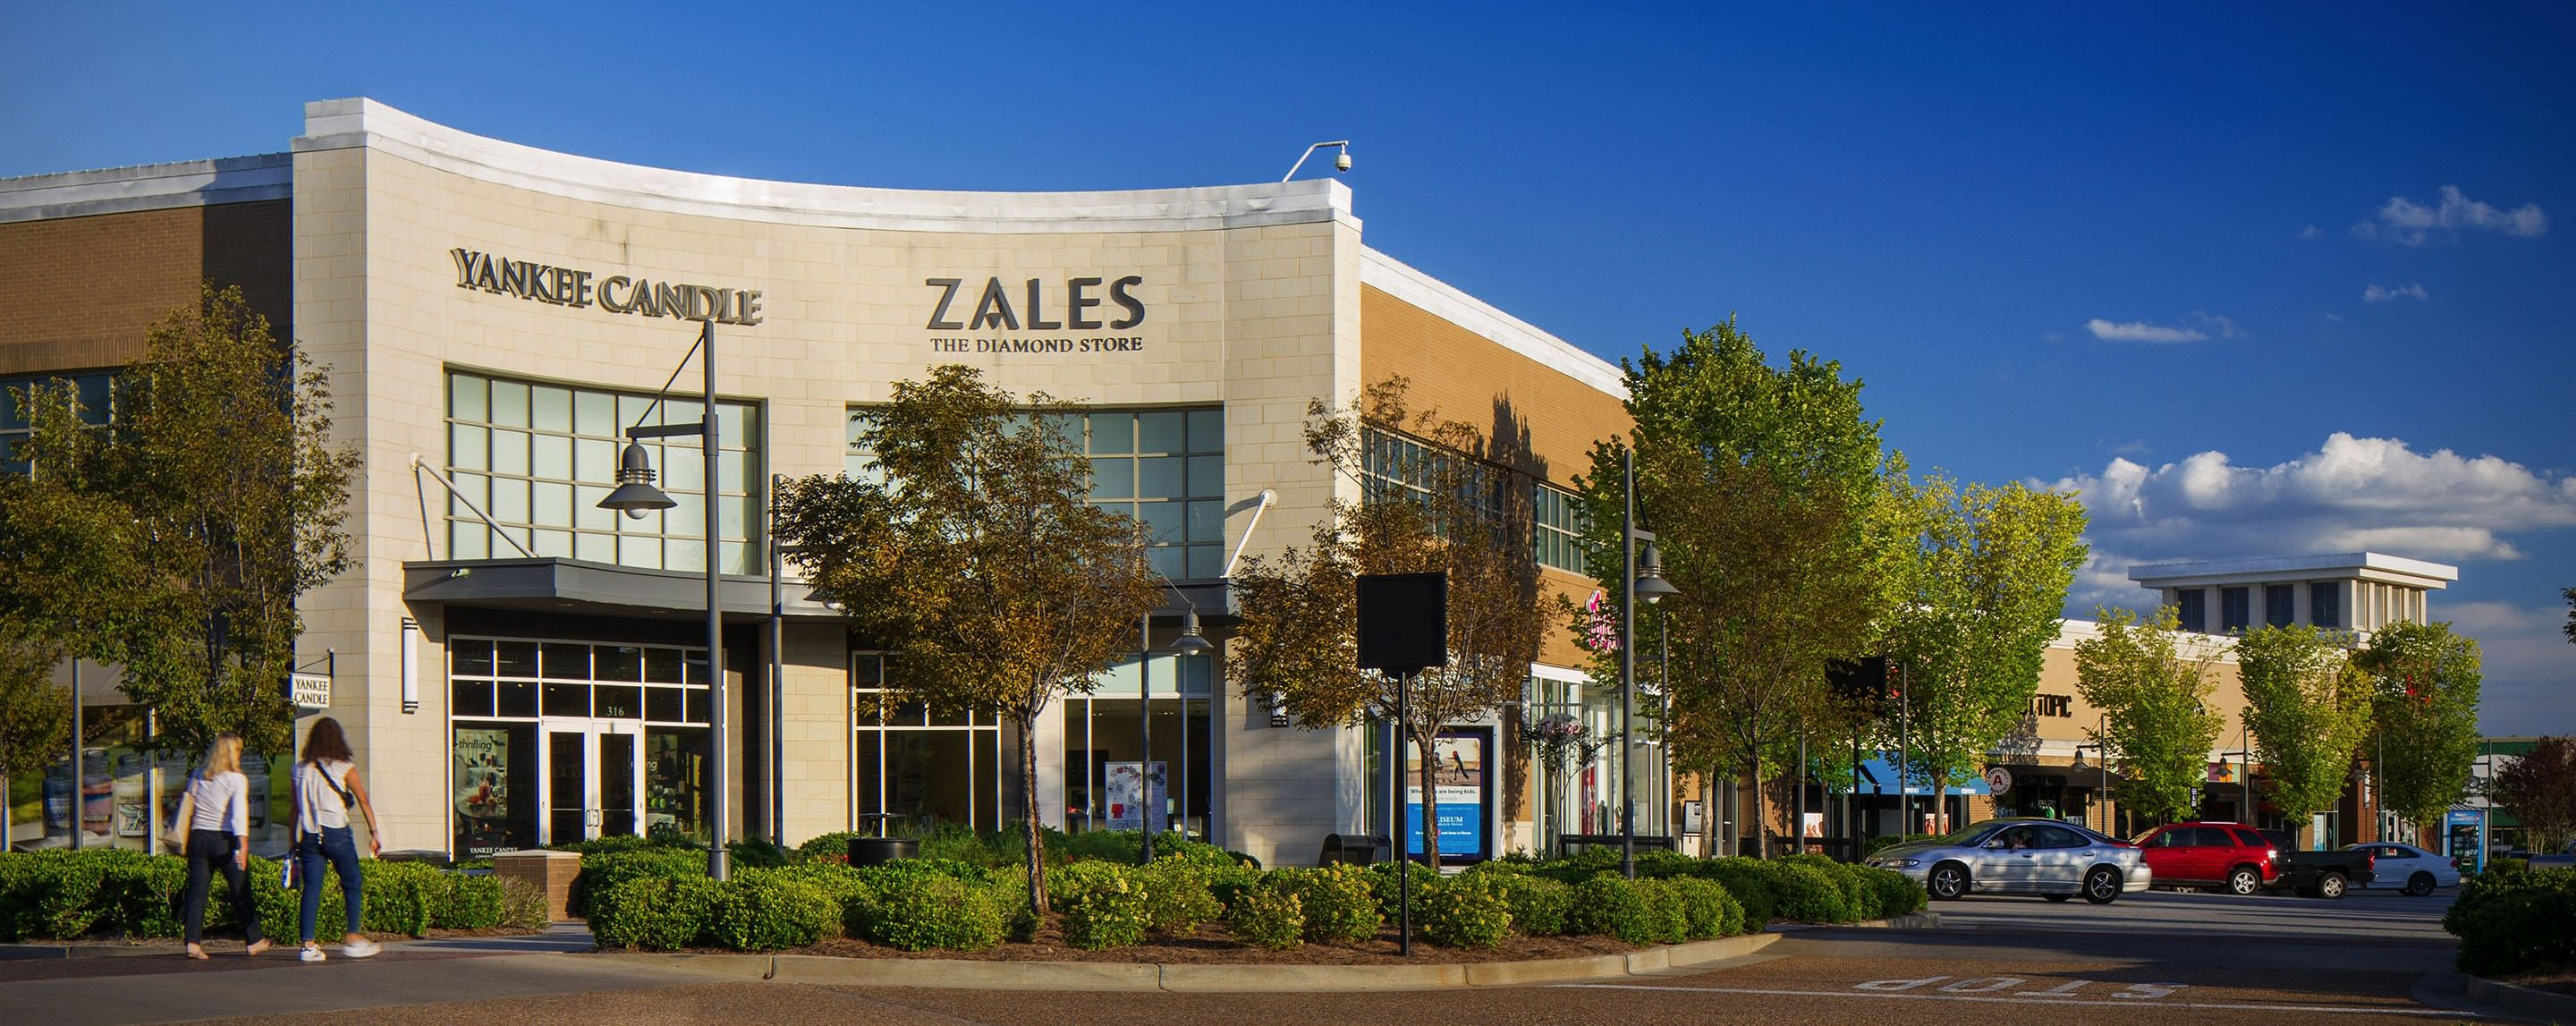 A Zales and Yankee Candle store are seen at an outdoor shopping center. Cars are parked on the side of the buildings.